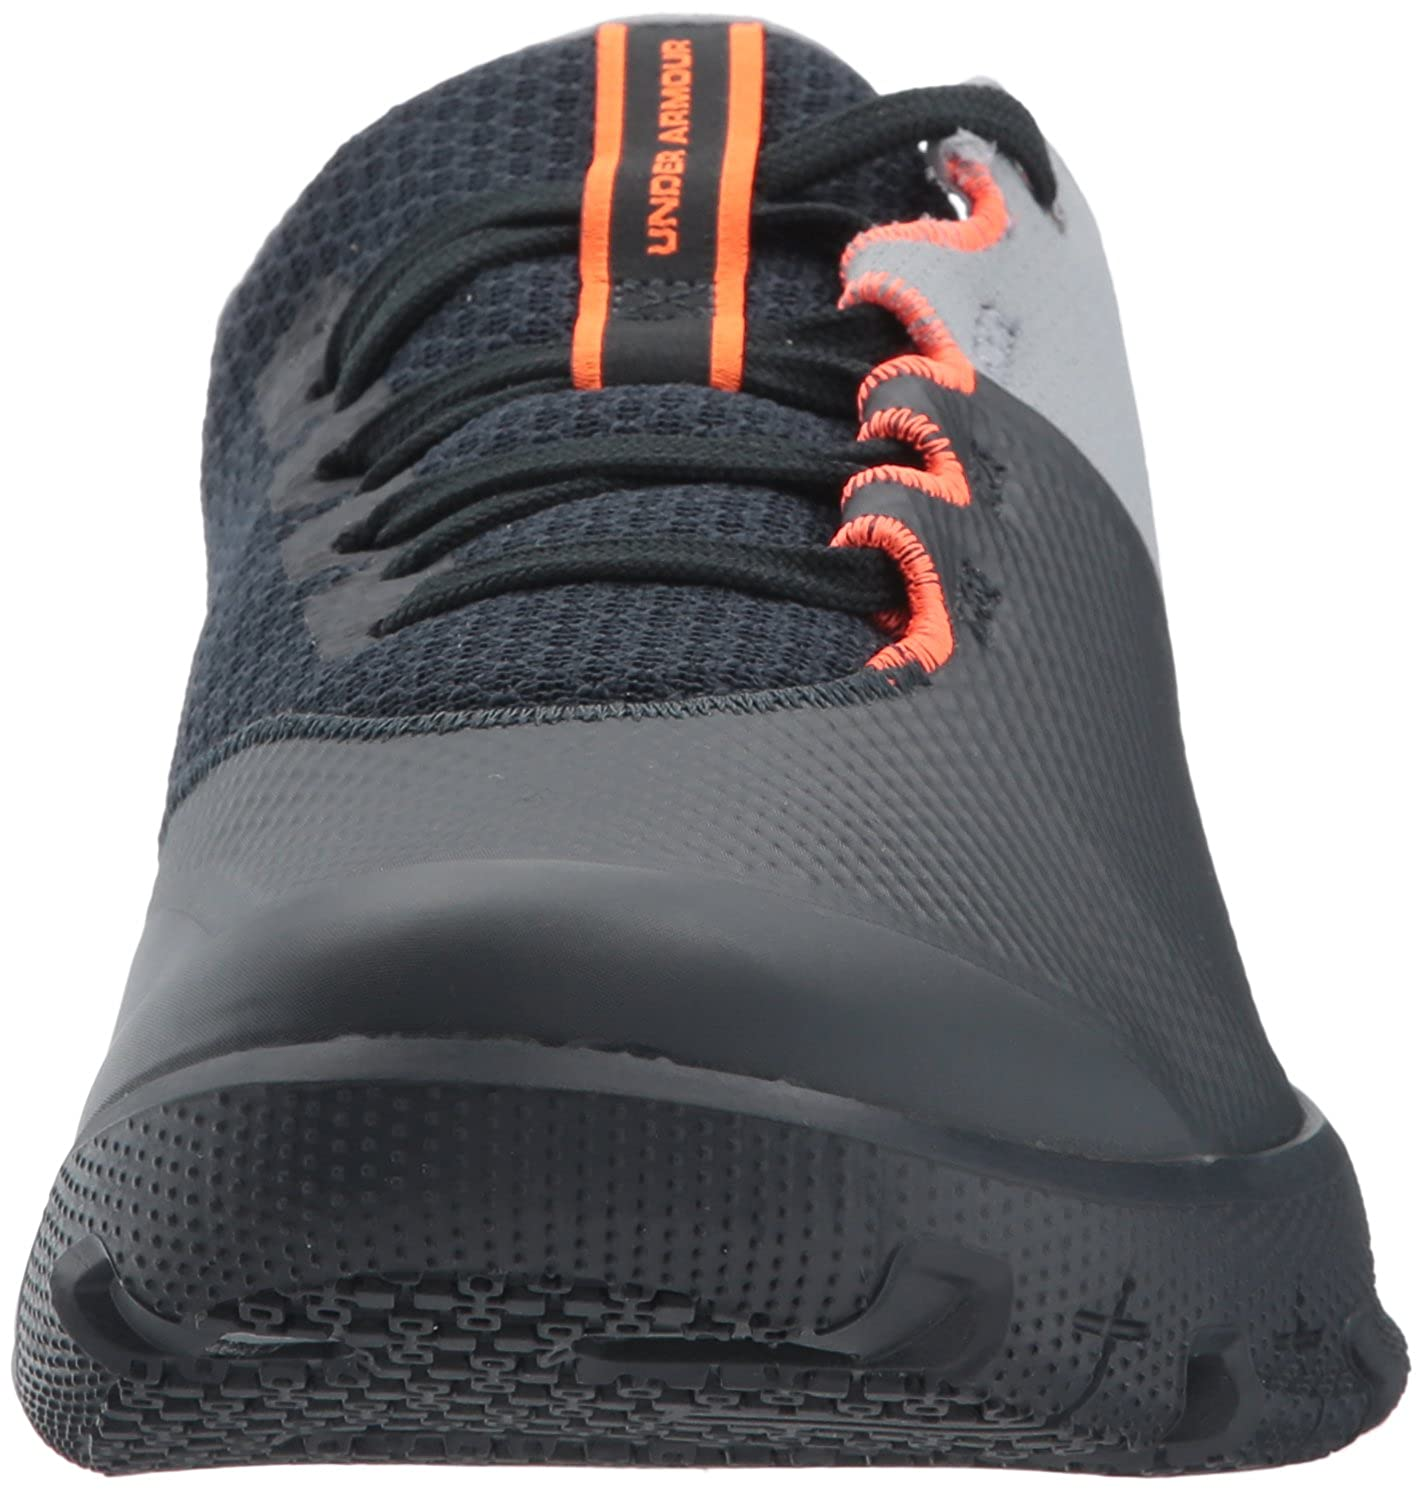 1285648 Under Armour Mens Charged Ultimate 2.0 Training Shoes